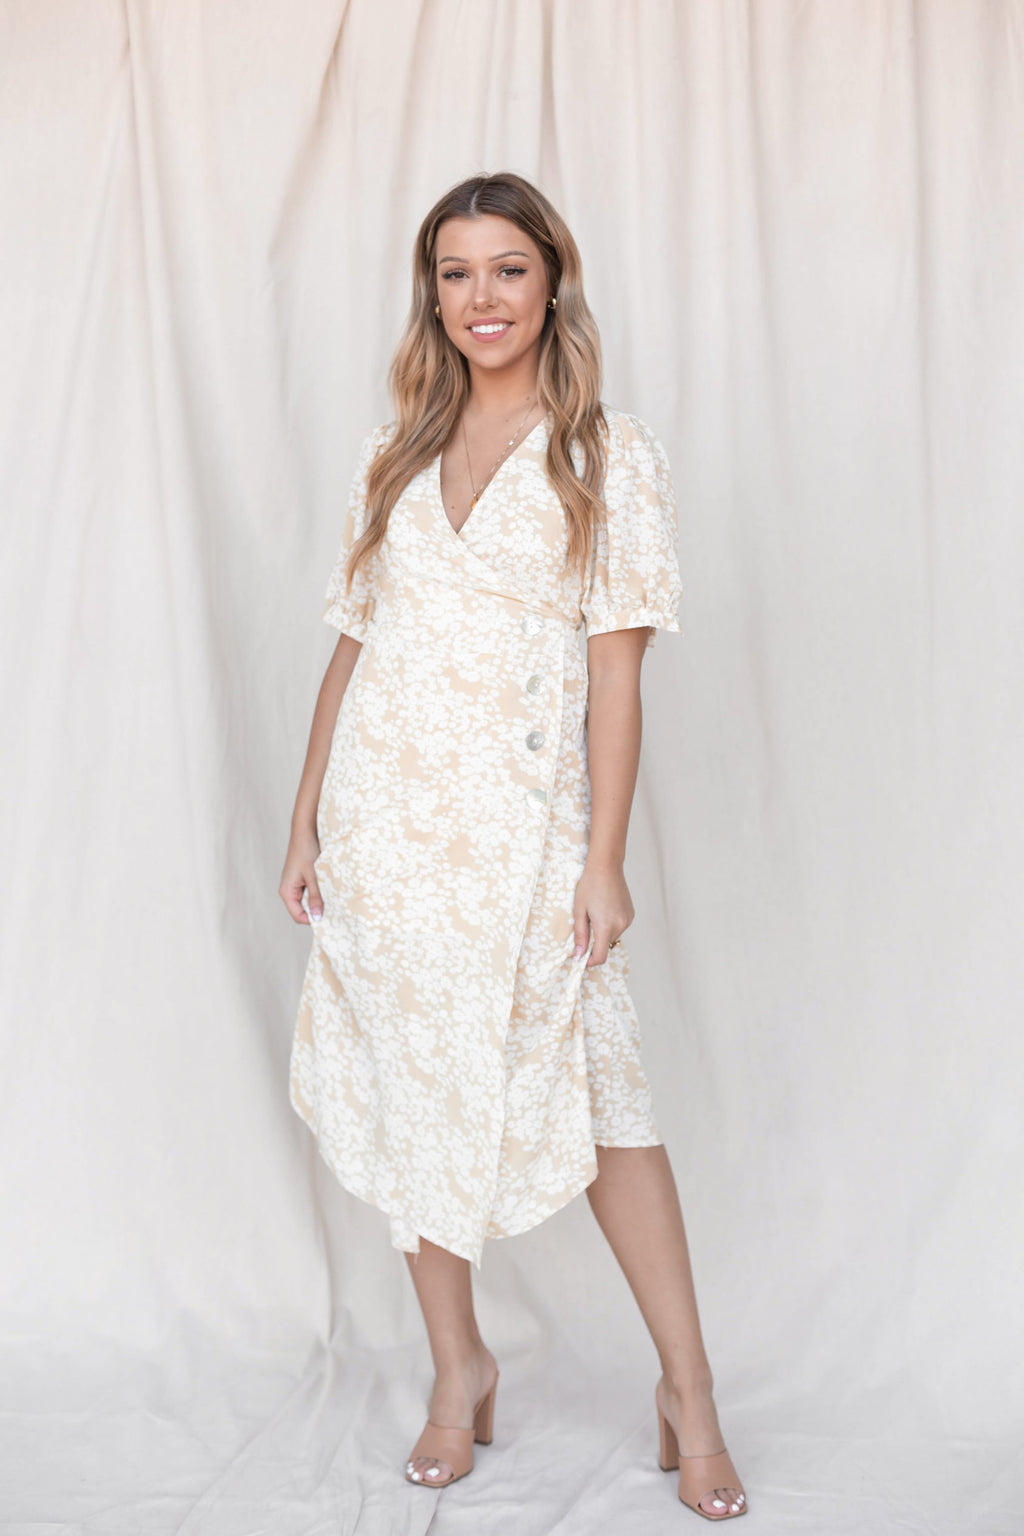 Laguna Floral Wrap Midi Dress - LLACIE